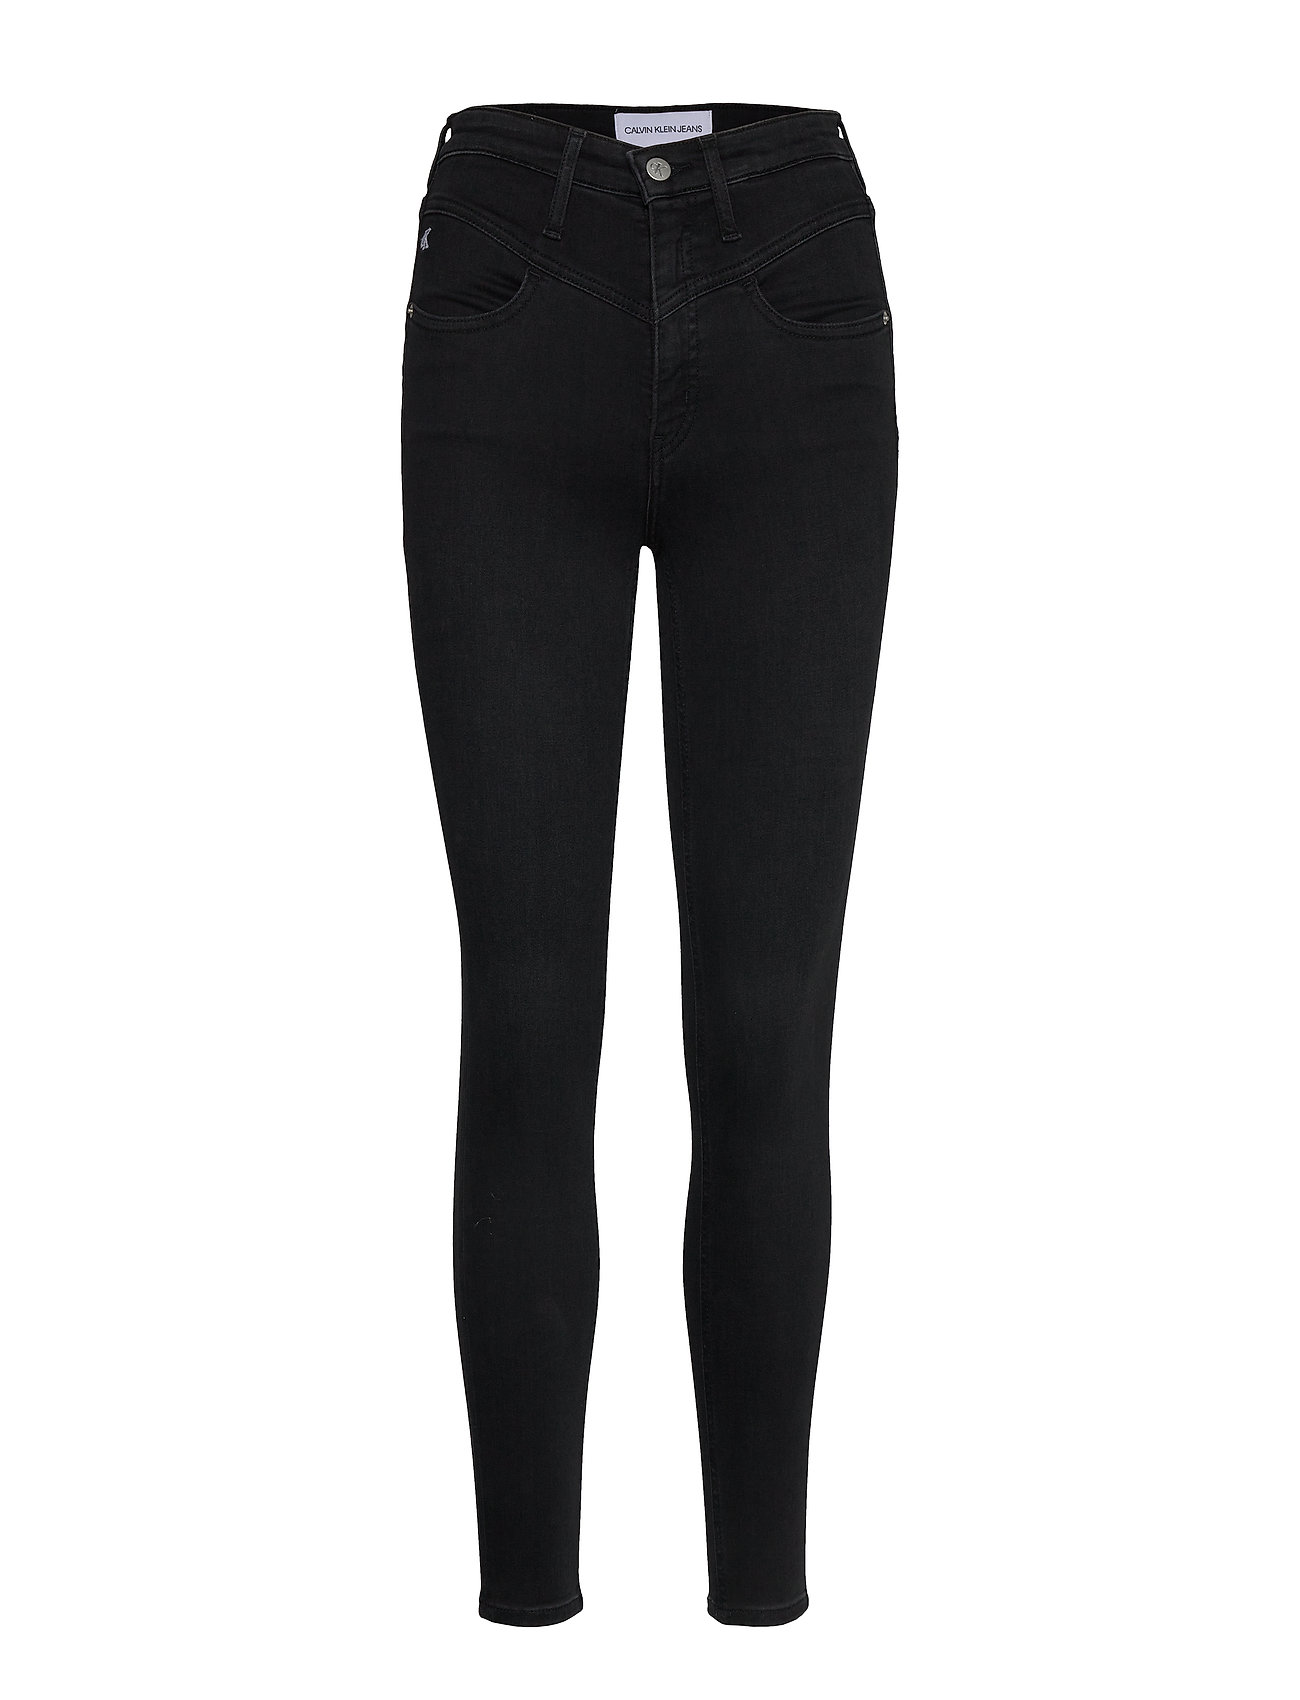 Image of High Rise Super Skinny Ankle Skinny Jeans Sort Calvin Klein Jeans (3425861153)